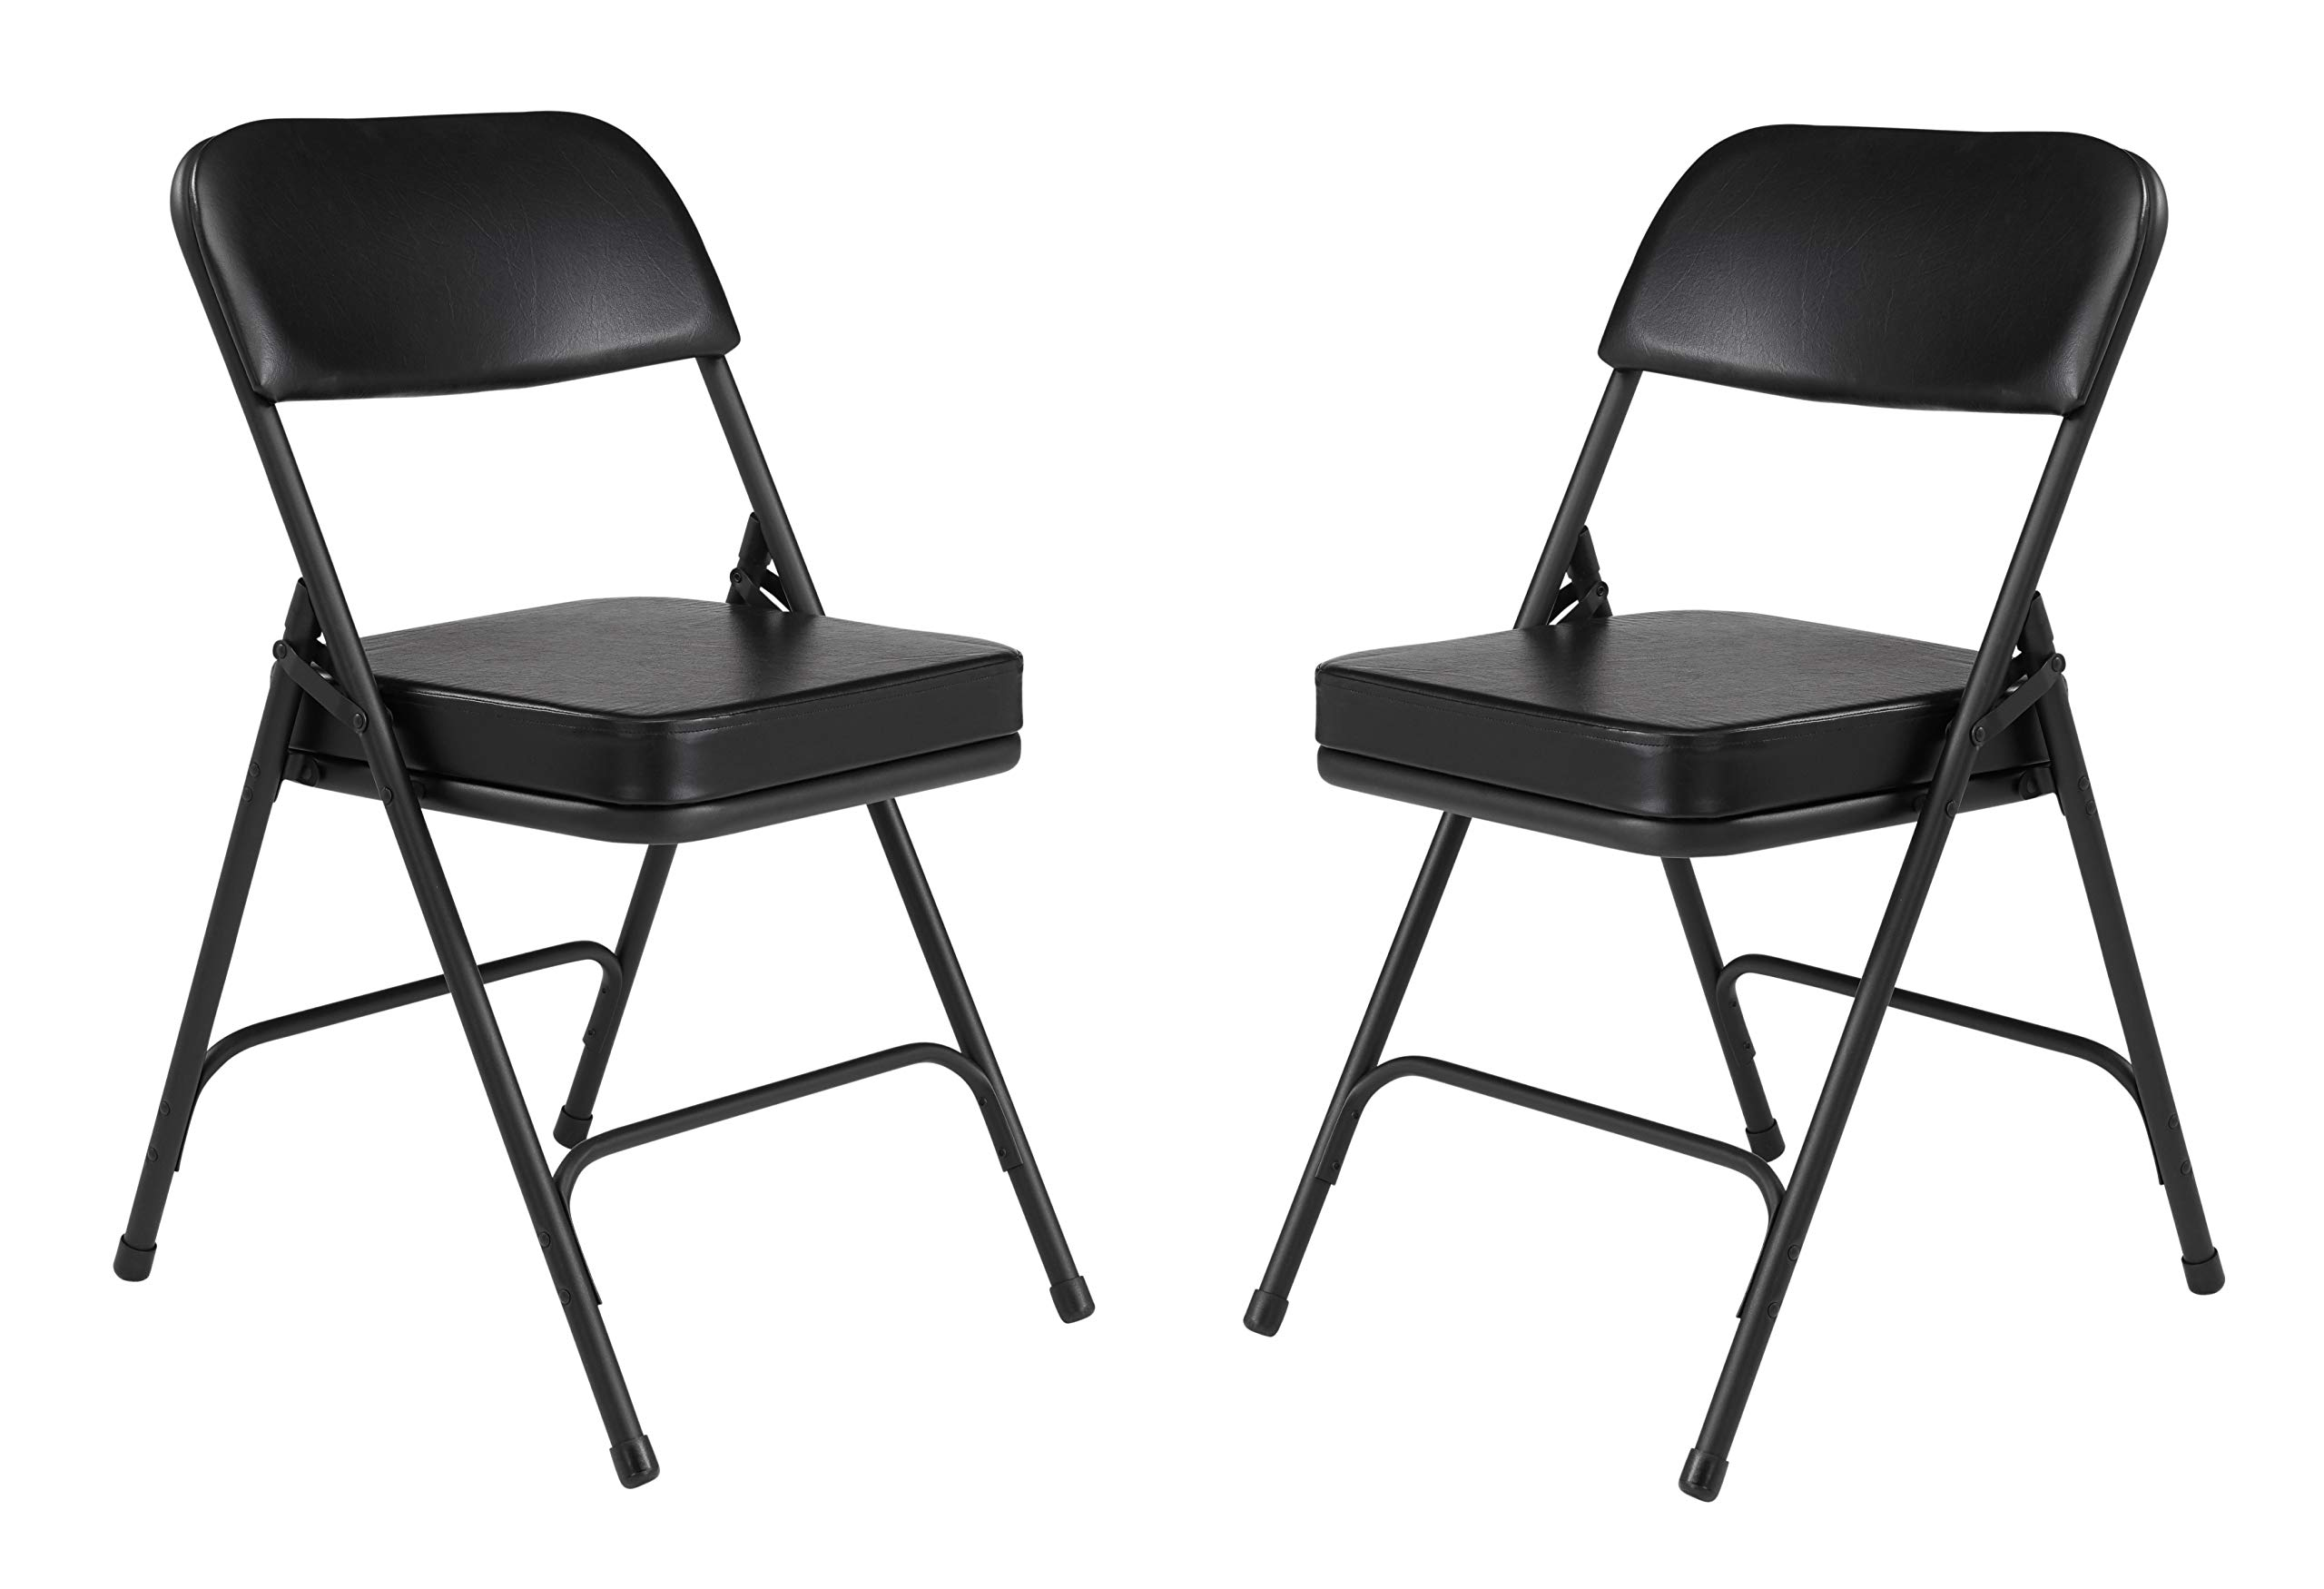 (2 Pack) NPS 3200 Series Premium 2'' Vinyl Upholstered Double Hinge Folding Chair, Black by National Public Seating